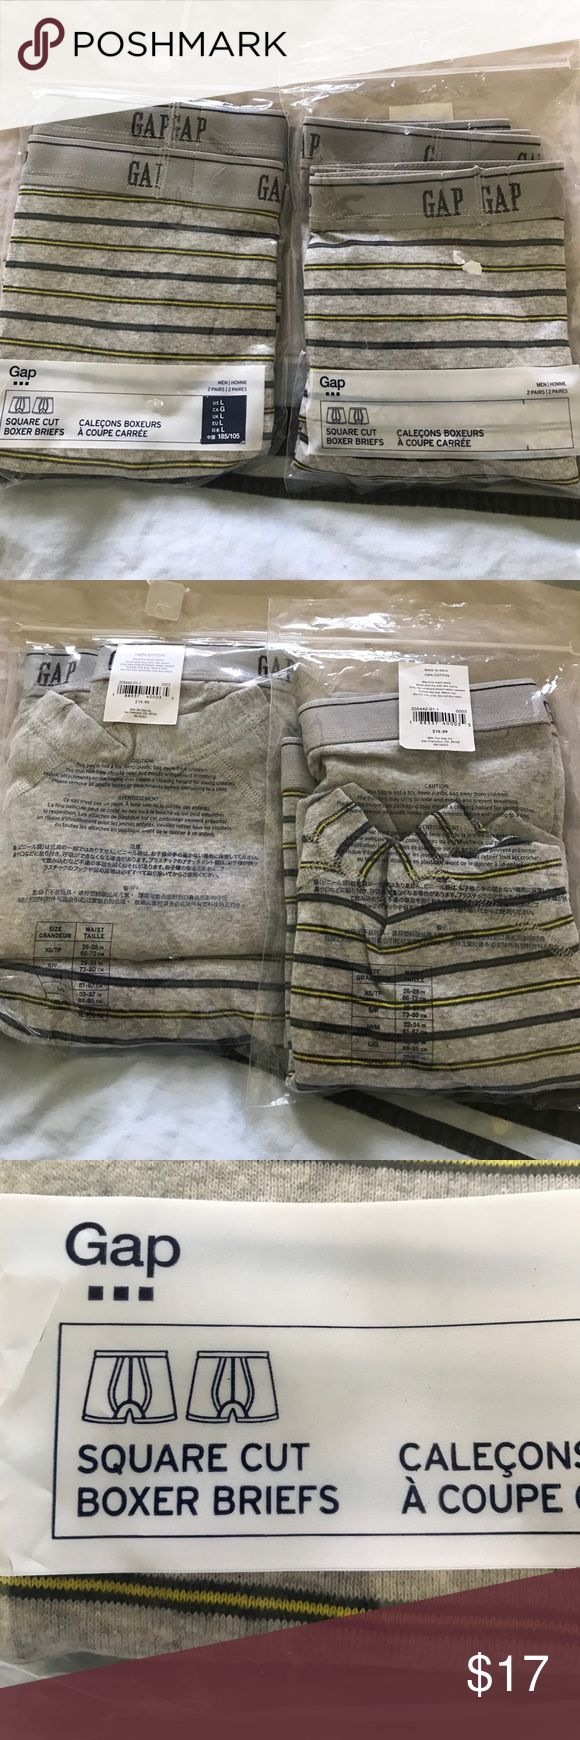 2 GAP men boxer briefs Every pack has 2 pairs so you have 4 pairs for this price GAP Underwear & Socks Boxer Briefs